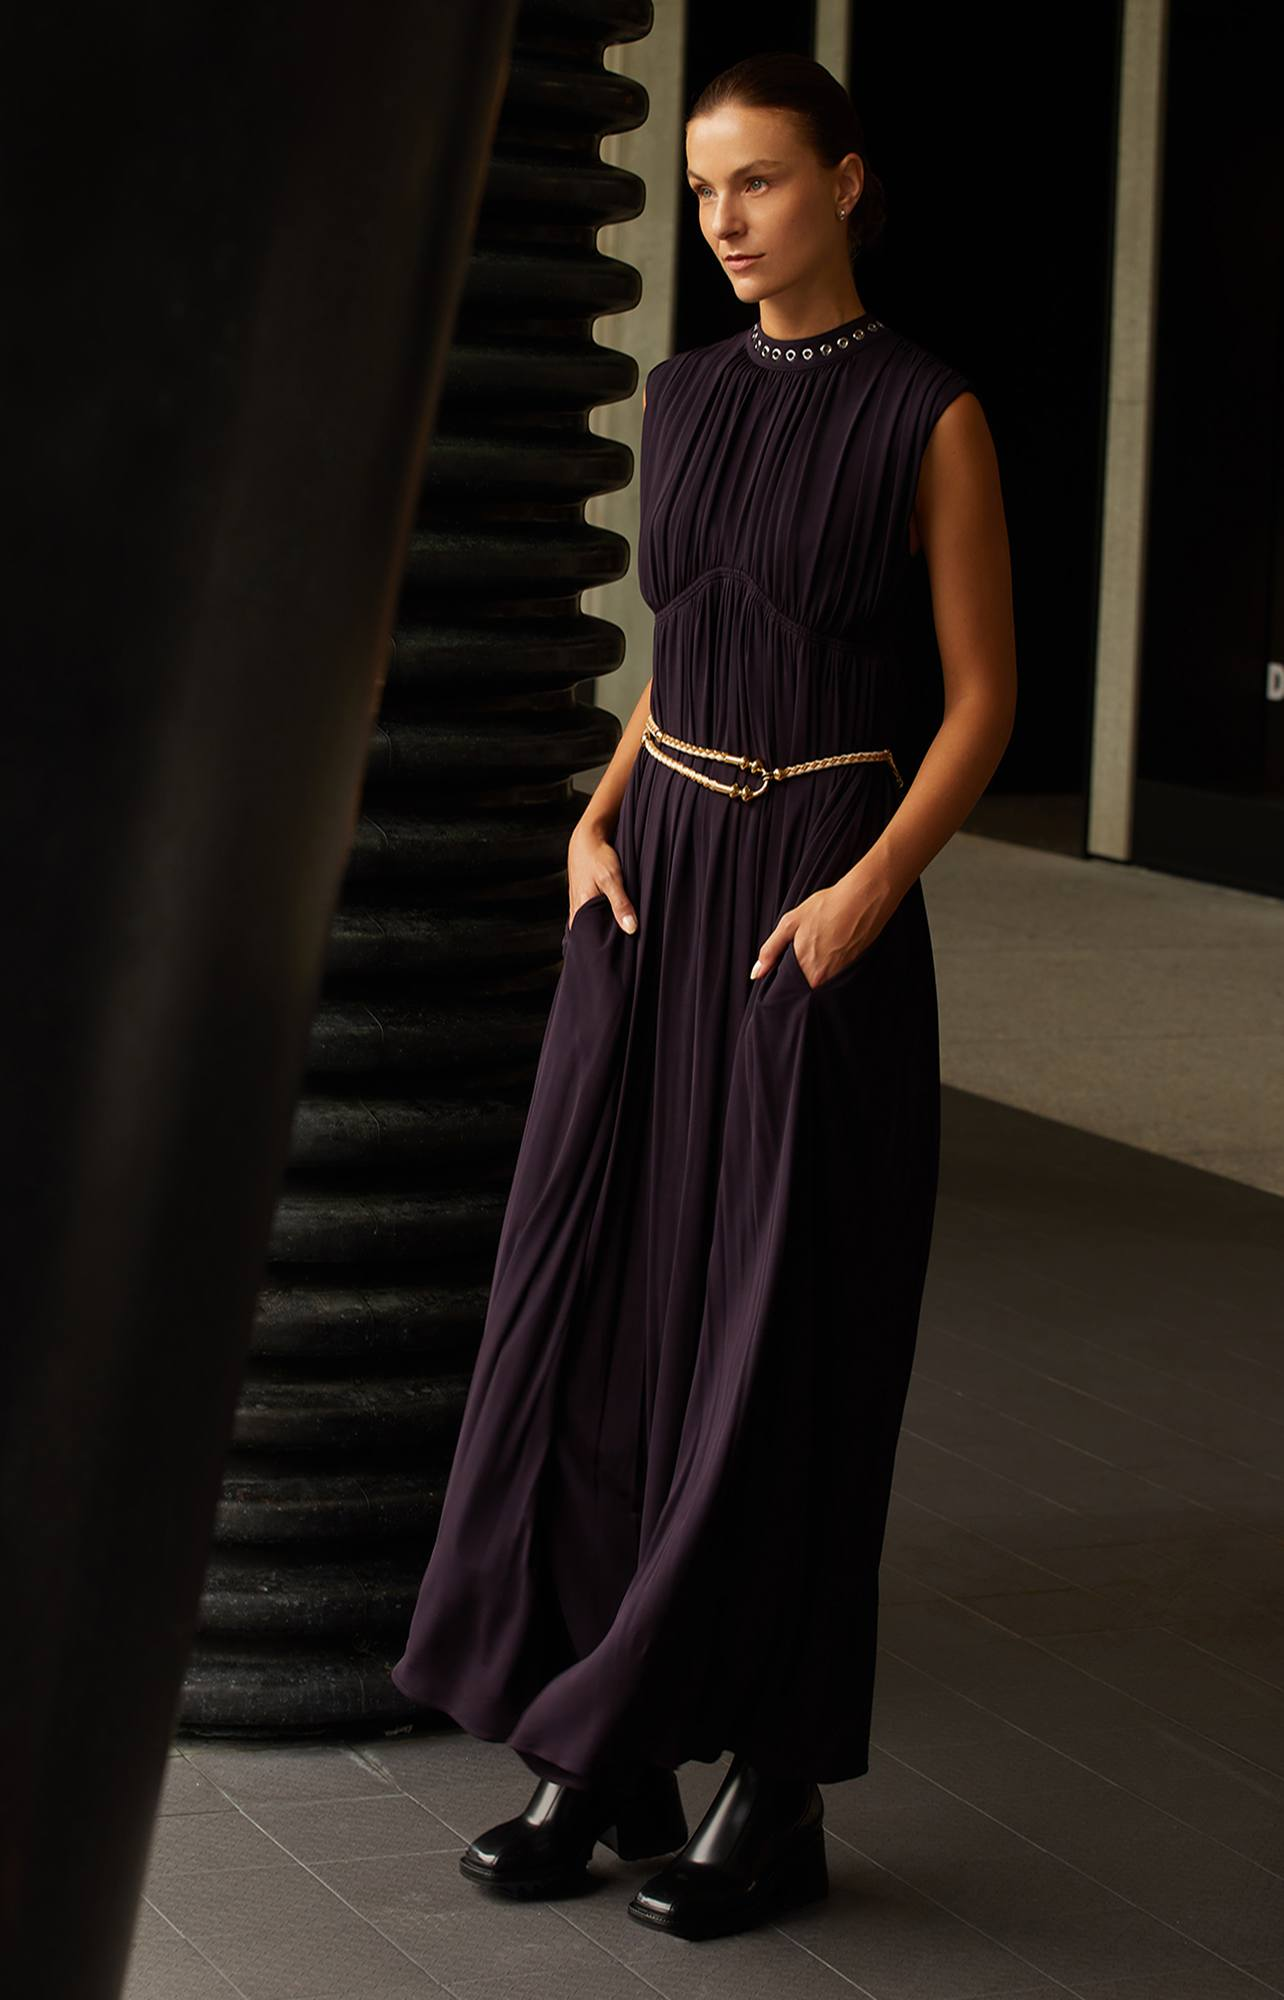 Chloé long sleeveless dress in black with silver neckline accents, brass and leather belt and black PVC rainboots